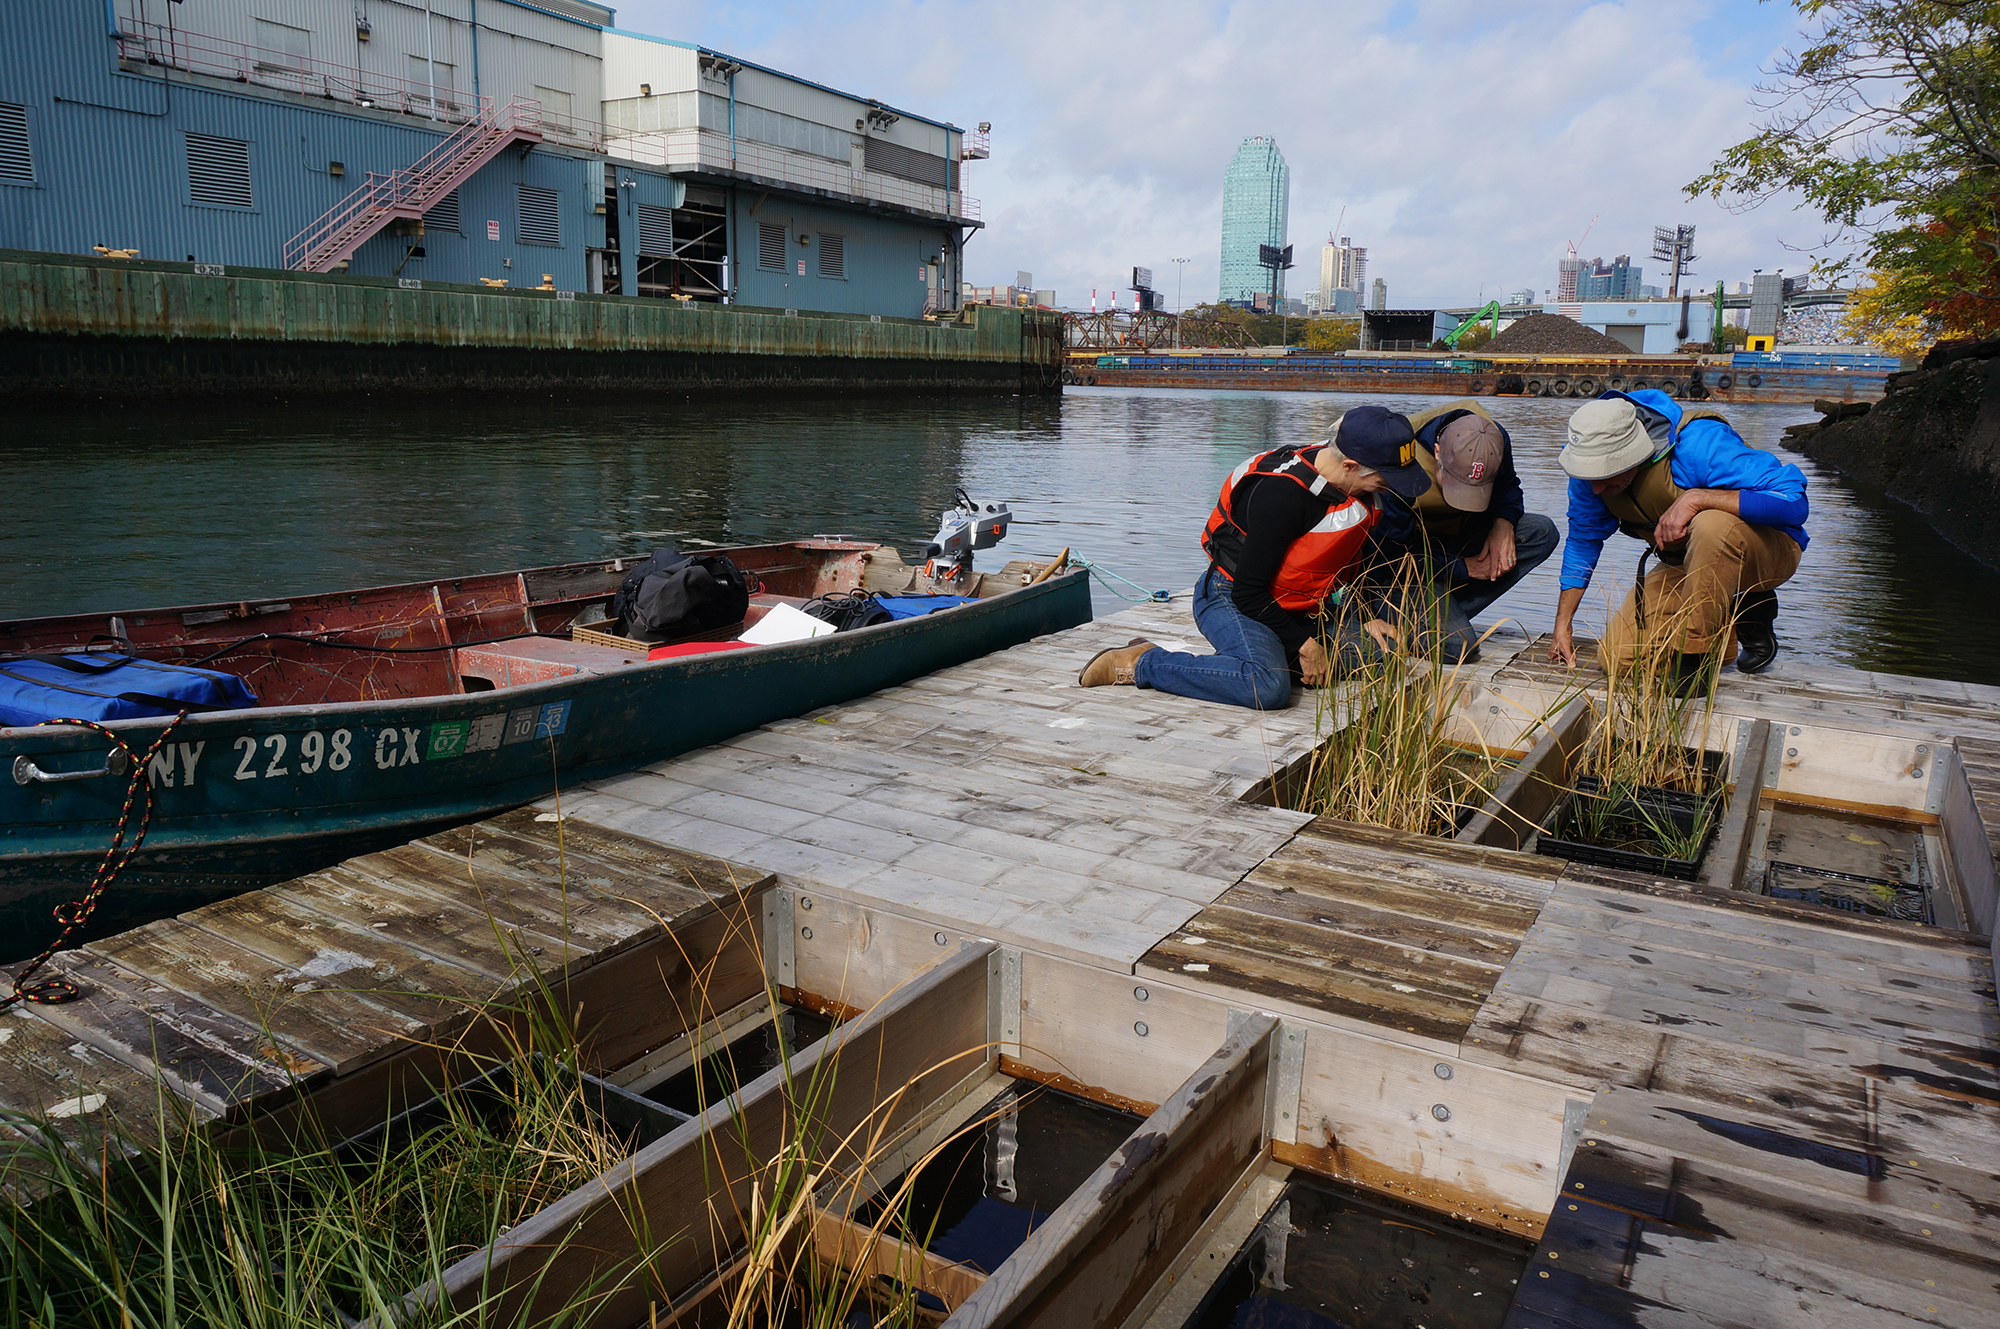 Researchers check one of the constructed floating wetlands on Newtown Creek. Students and volunteers monitor the grasses, which filter pollutants from the water. Image courtesy of Newtown Creek Alliance.